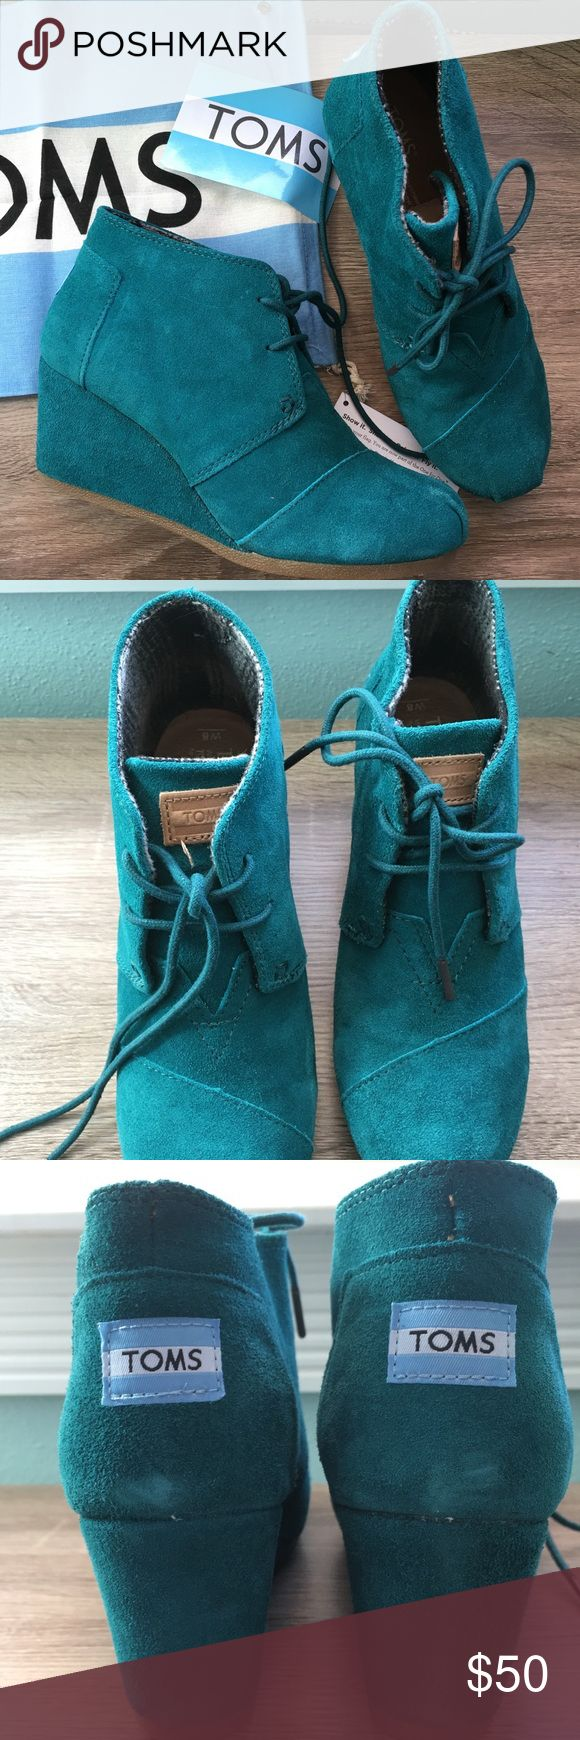 "Toms Desert Wedge In Lake Green Lace up wedge bootie. Suede upper. Teal color. Rubber bottom. Heel is approximately 2 3/4"". Worn a few times and in great condition. Slight almost faded spots. Ships in box. TOMS Shoes Wedges"